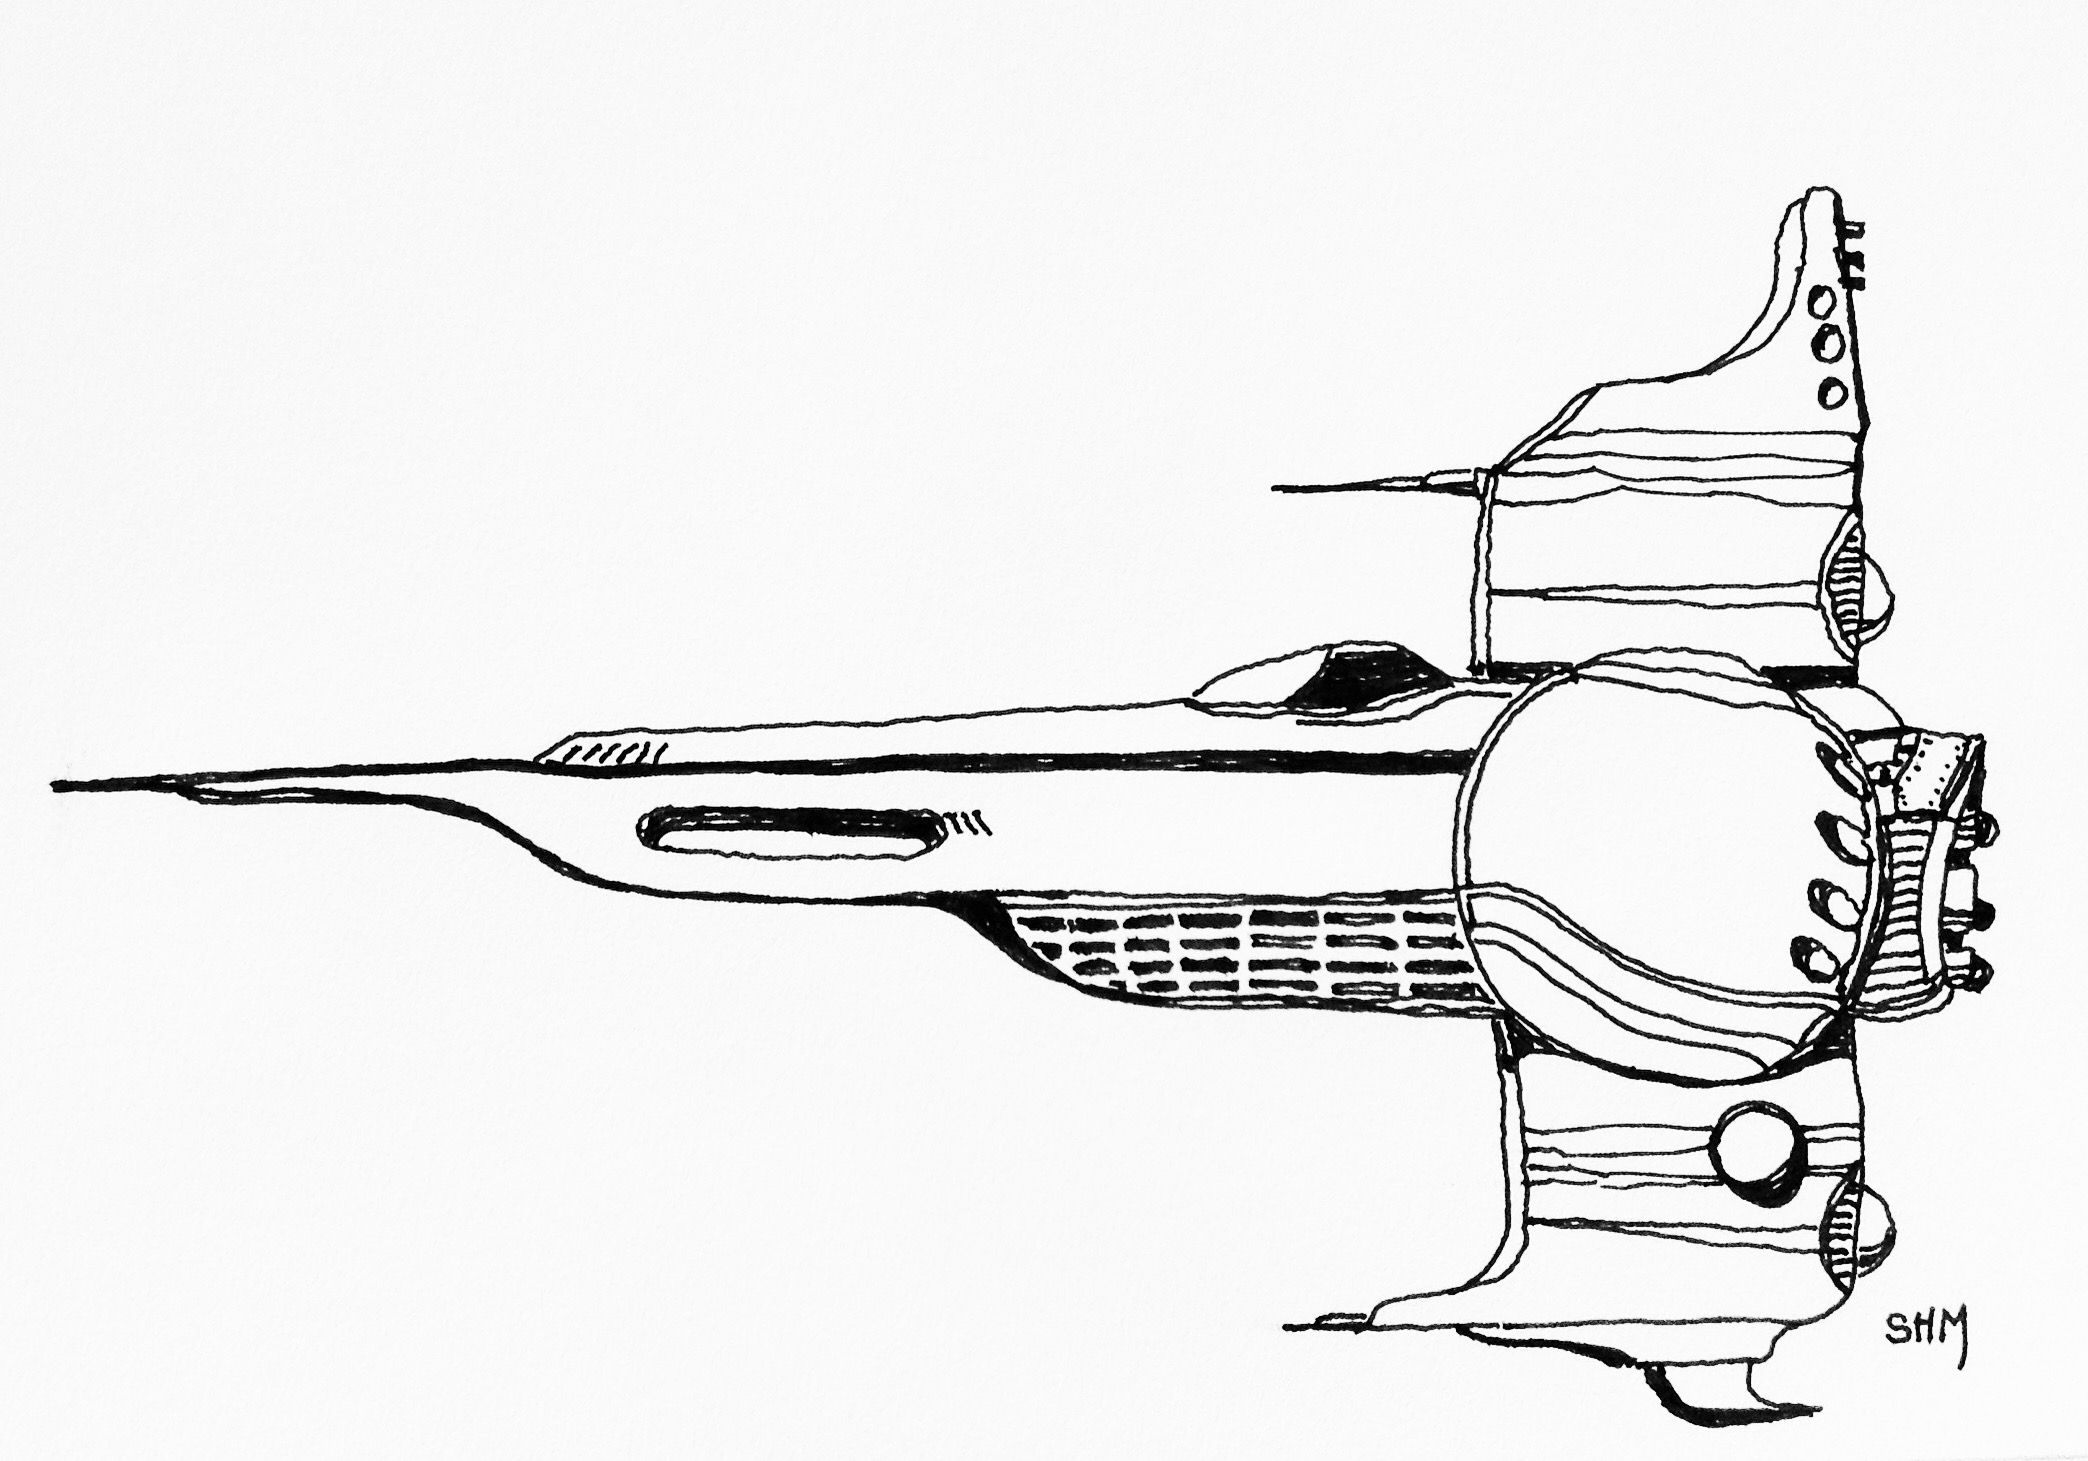 Spaceship #20 - May 20 2016 - ink on paper by Steven H MacDowall 7 inches = 17.78cm X 5 inches = 12.7cm (width x height).